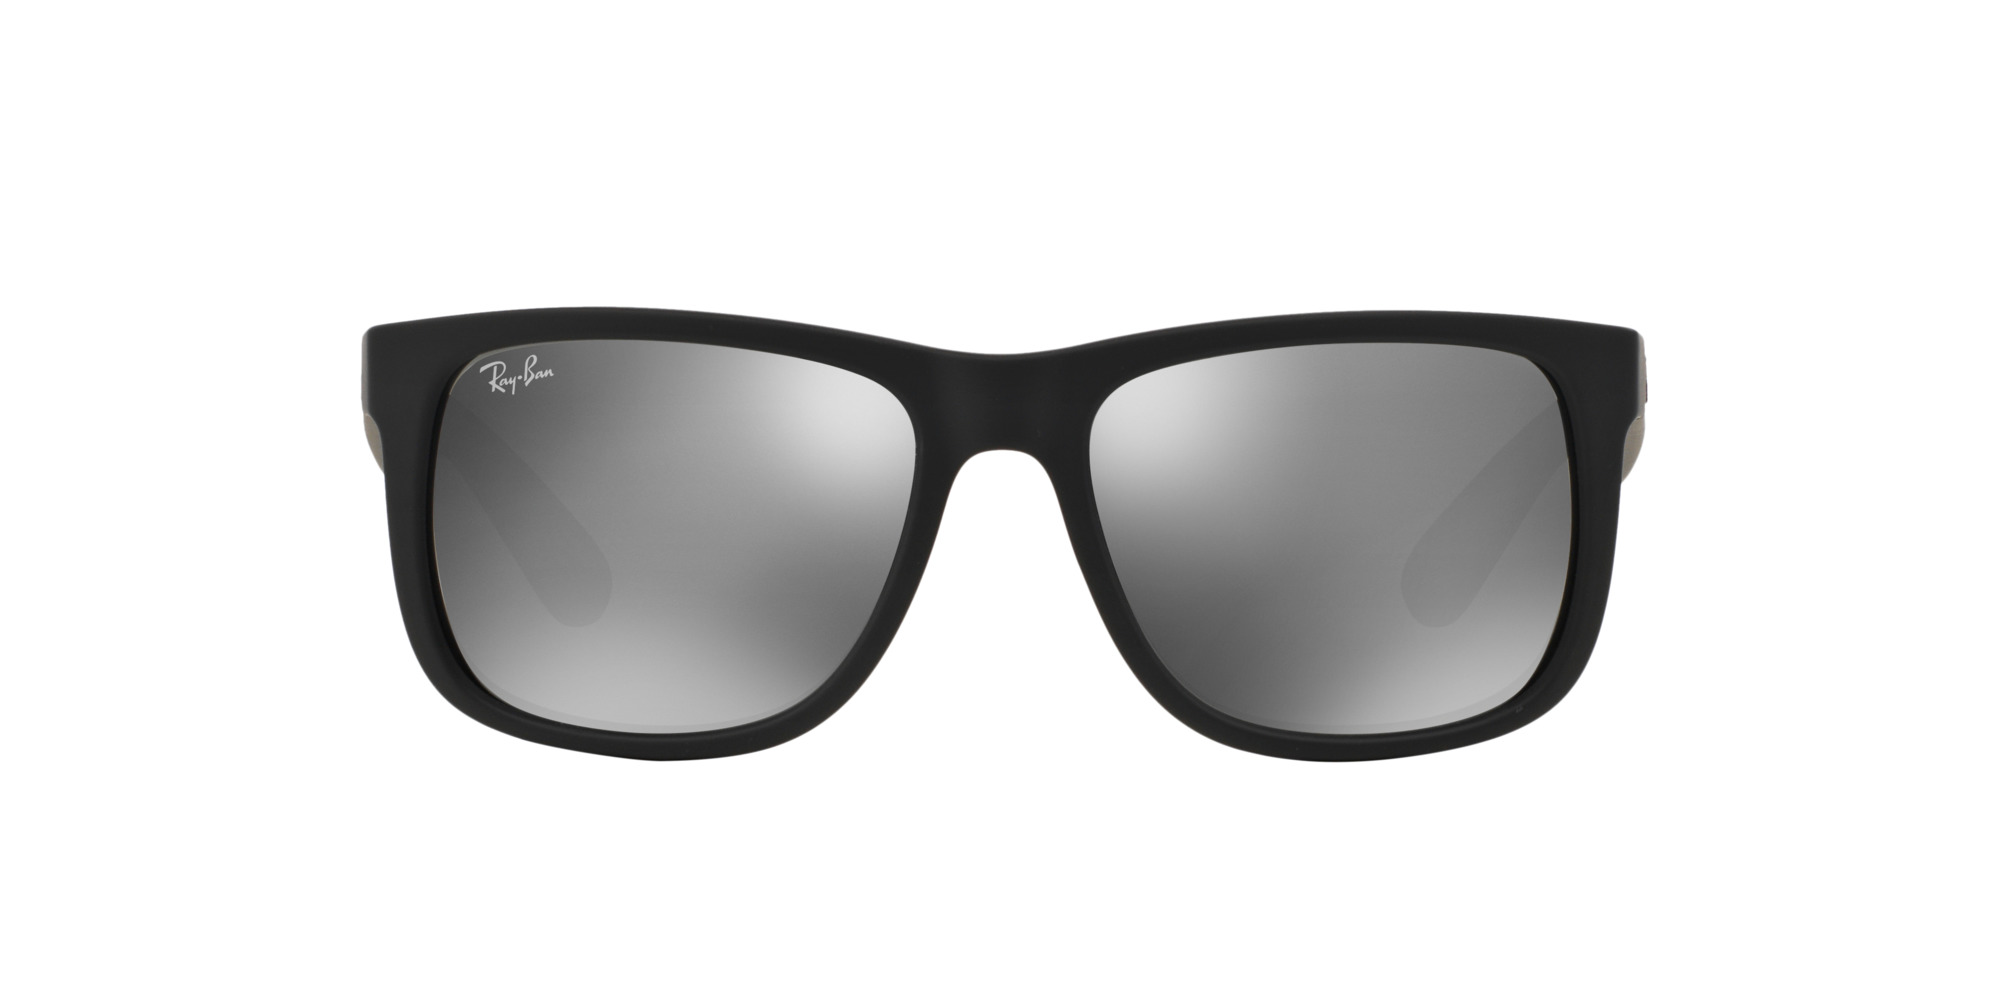 RAY-BAN JUSTIN RB 4165 622/6G 55mm.-360